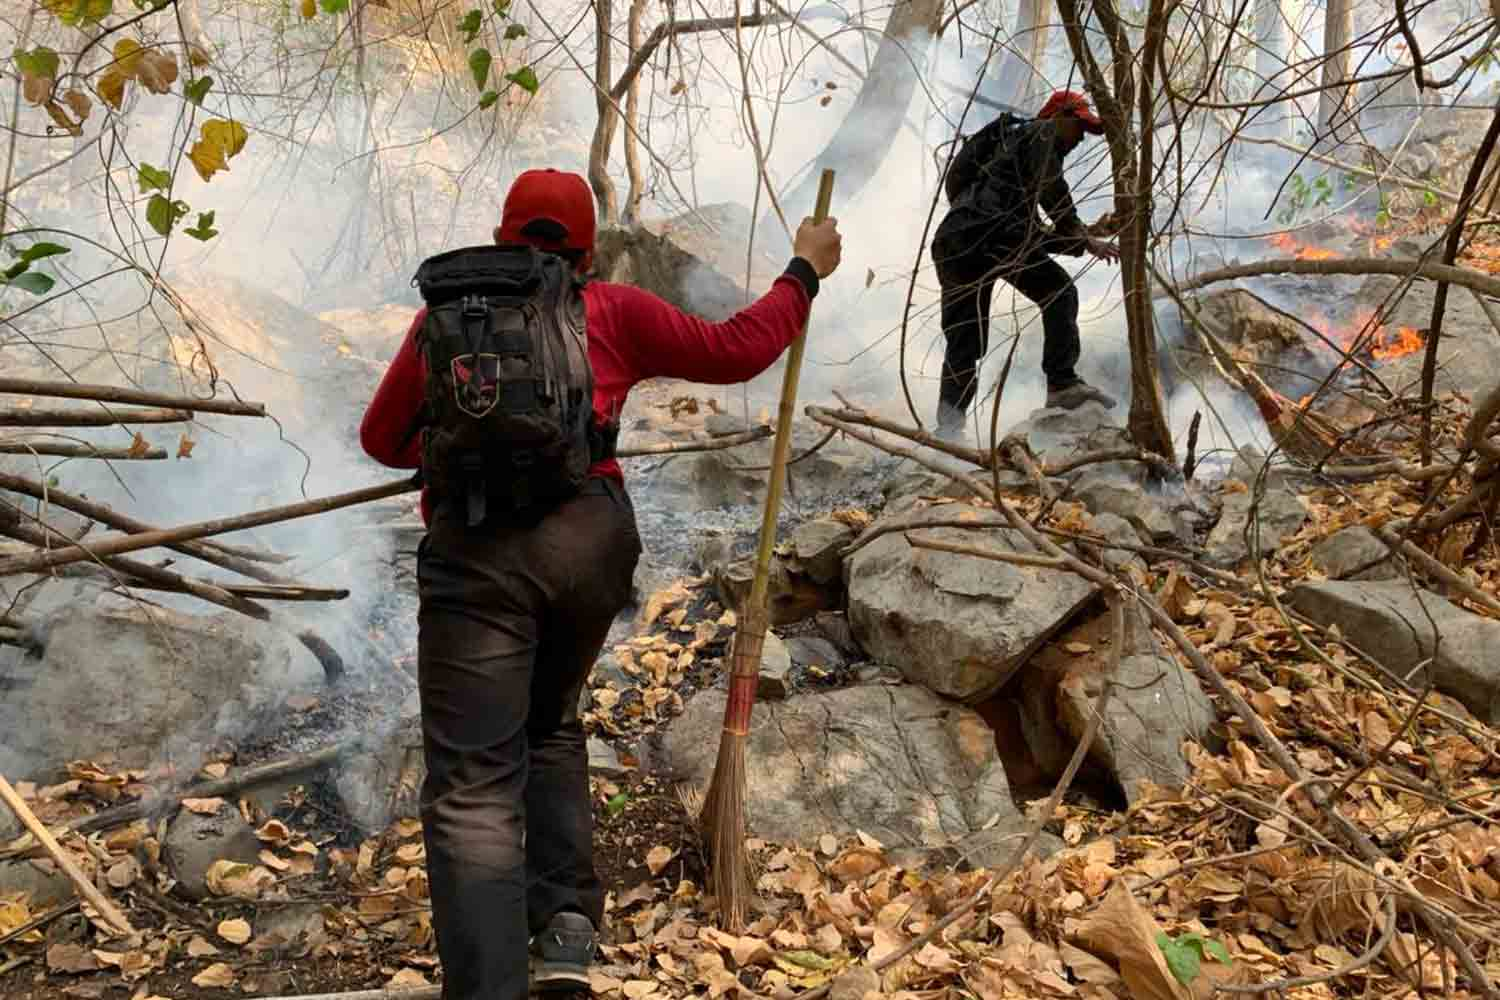 Firefighters combat one of several fires that have burned in forest in Khao Yai National Park since early in January. The fires were declared under control on Monday. (Photo by Prasit Tangprasert)